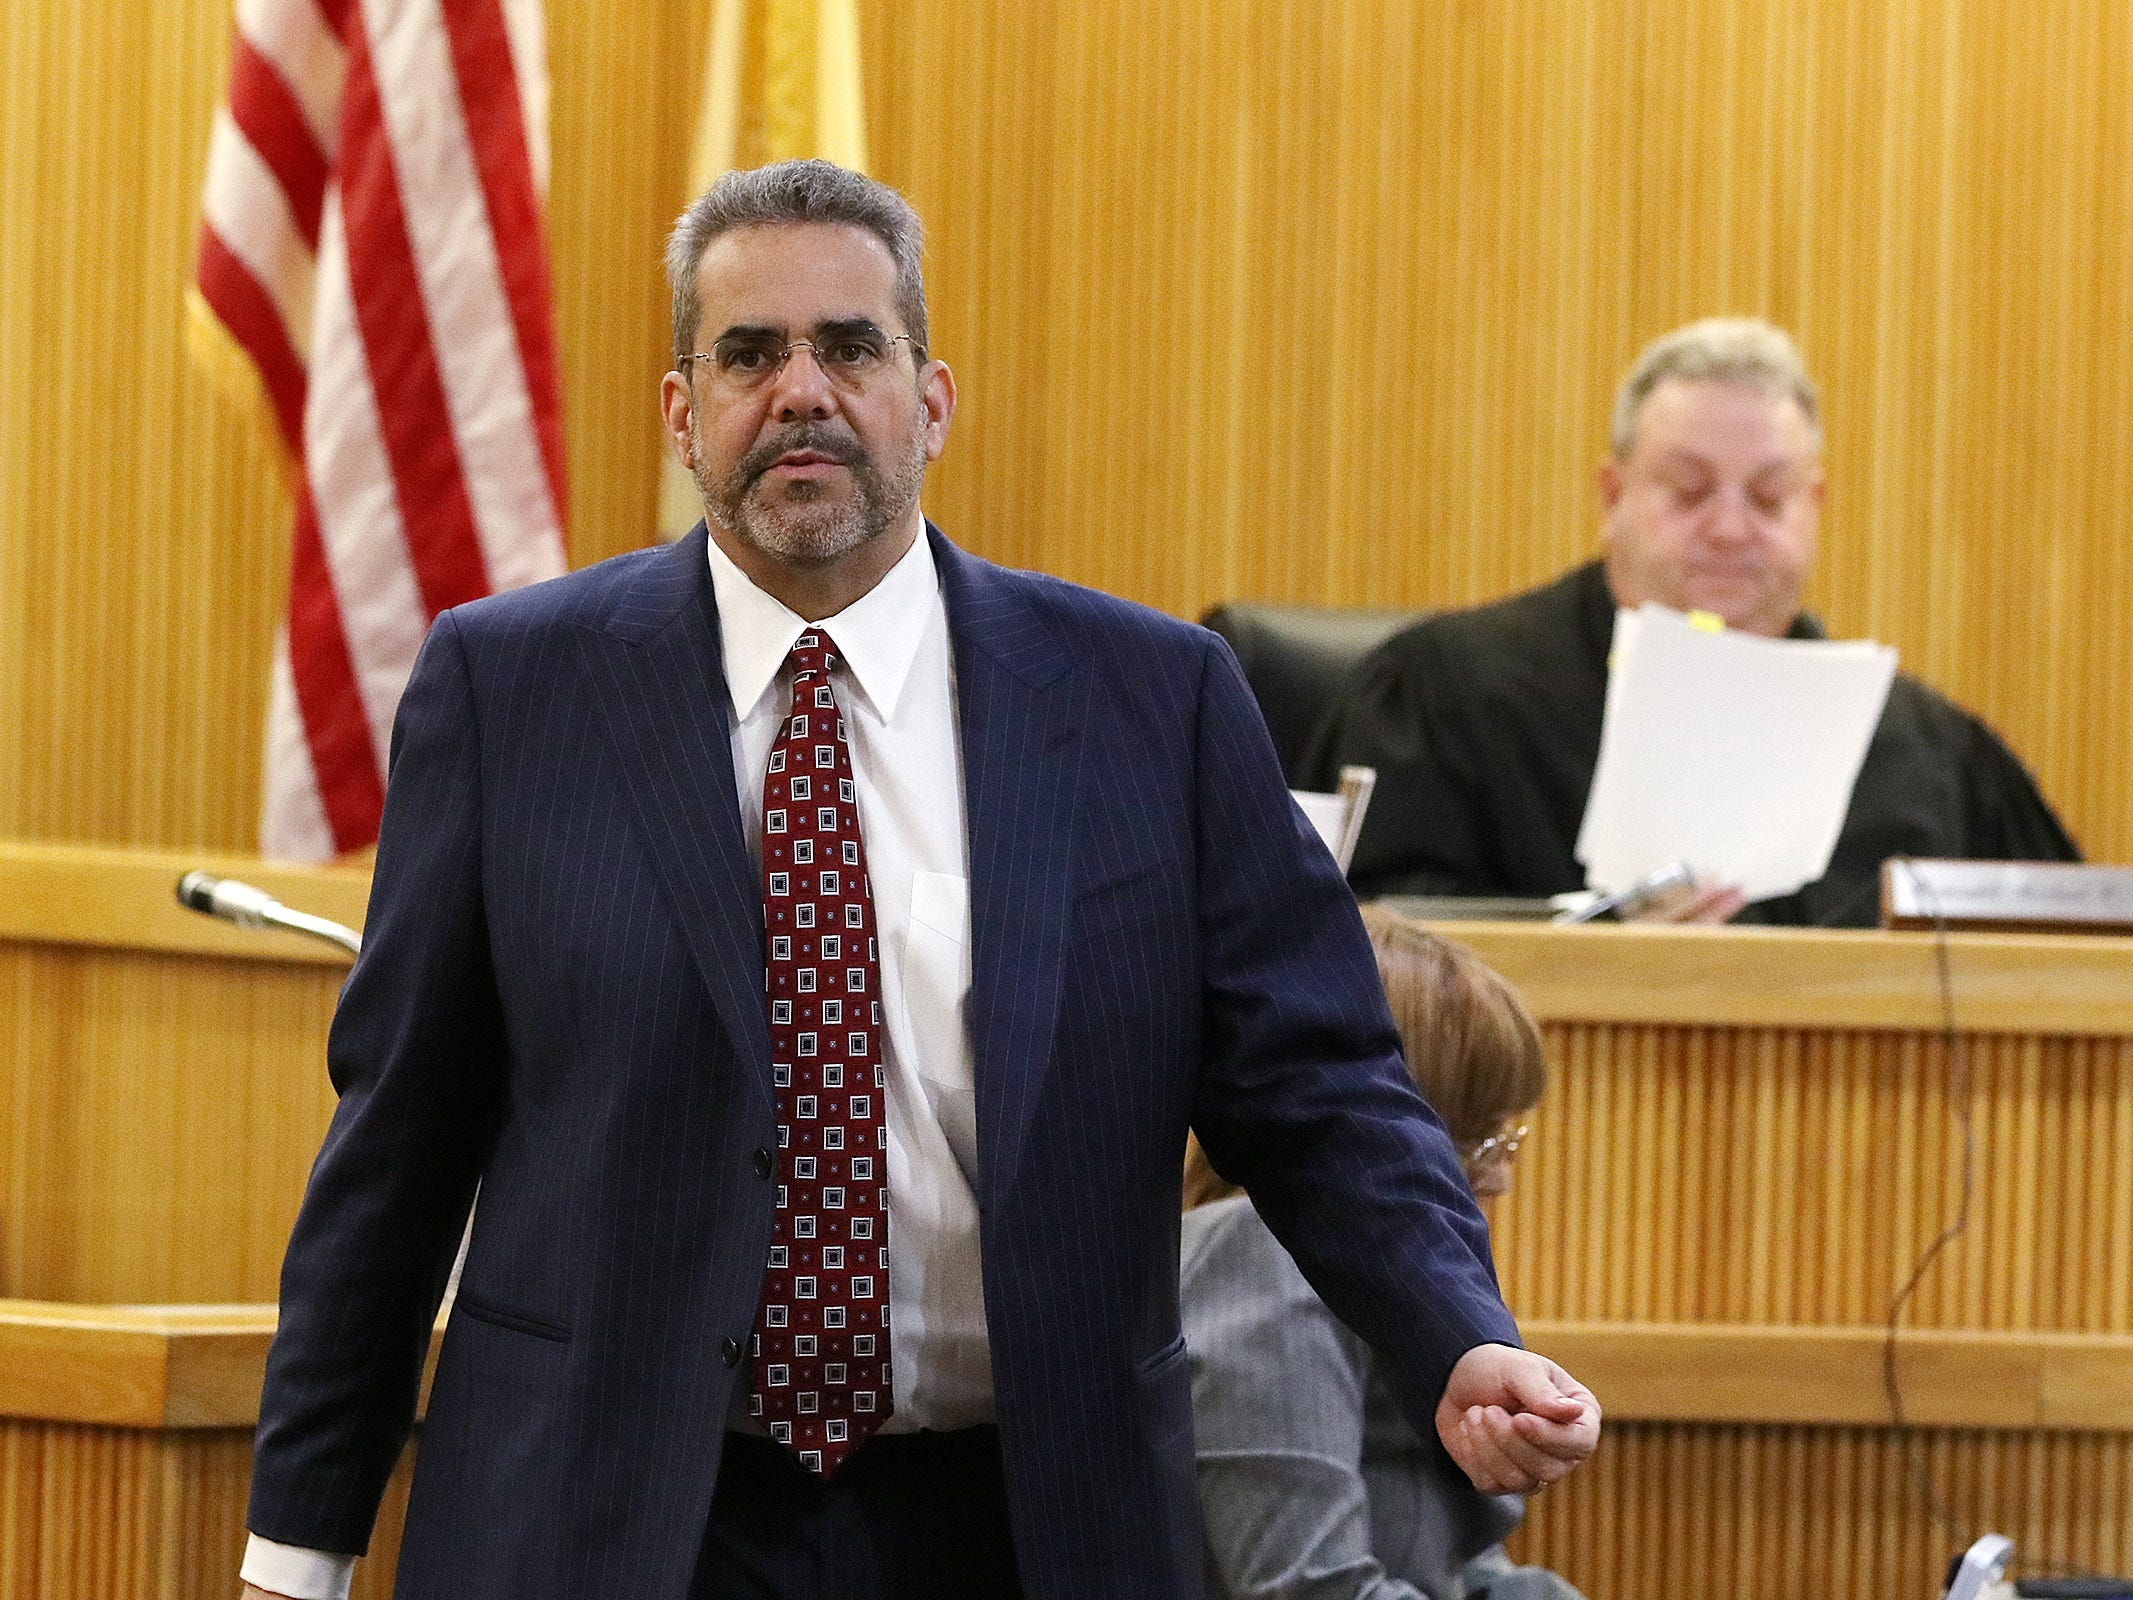 Carlos Diaz-Cobo, defense attorney, amends the language in the judge's charge to the jury before closing statements during the trial of Liam McAtasney, who is charged with the murder of former high school classmate, Sarah Stern, before Superior Court Judge Richard W. English at the Monmouth County Courthouse in Freehold, NJ Friday, February 22, 2019.